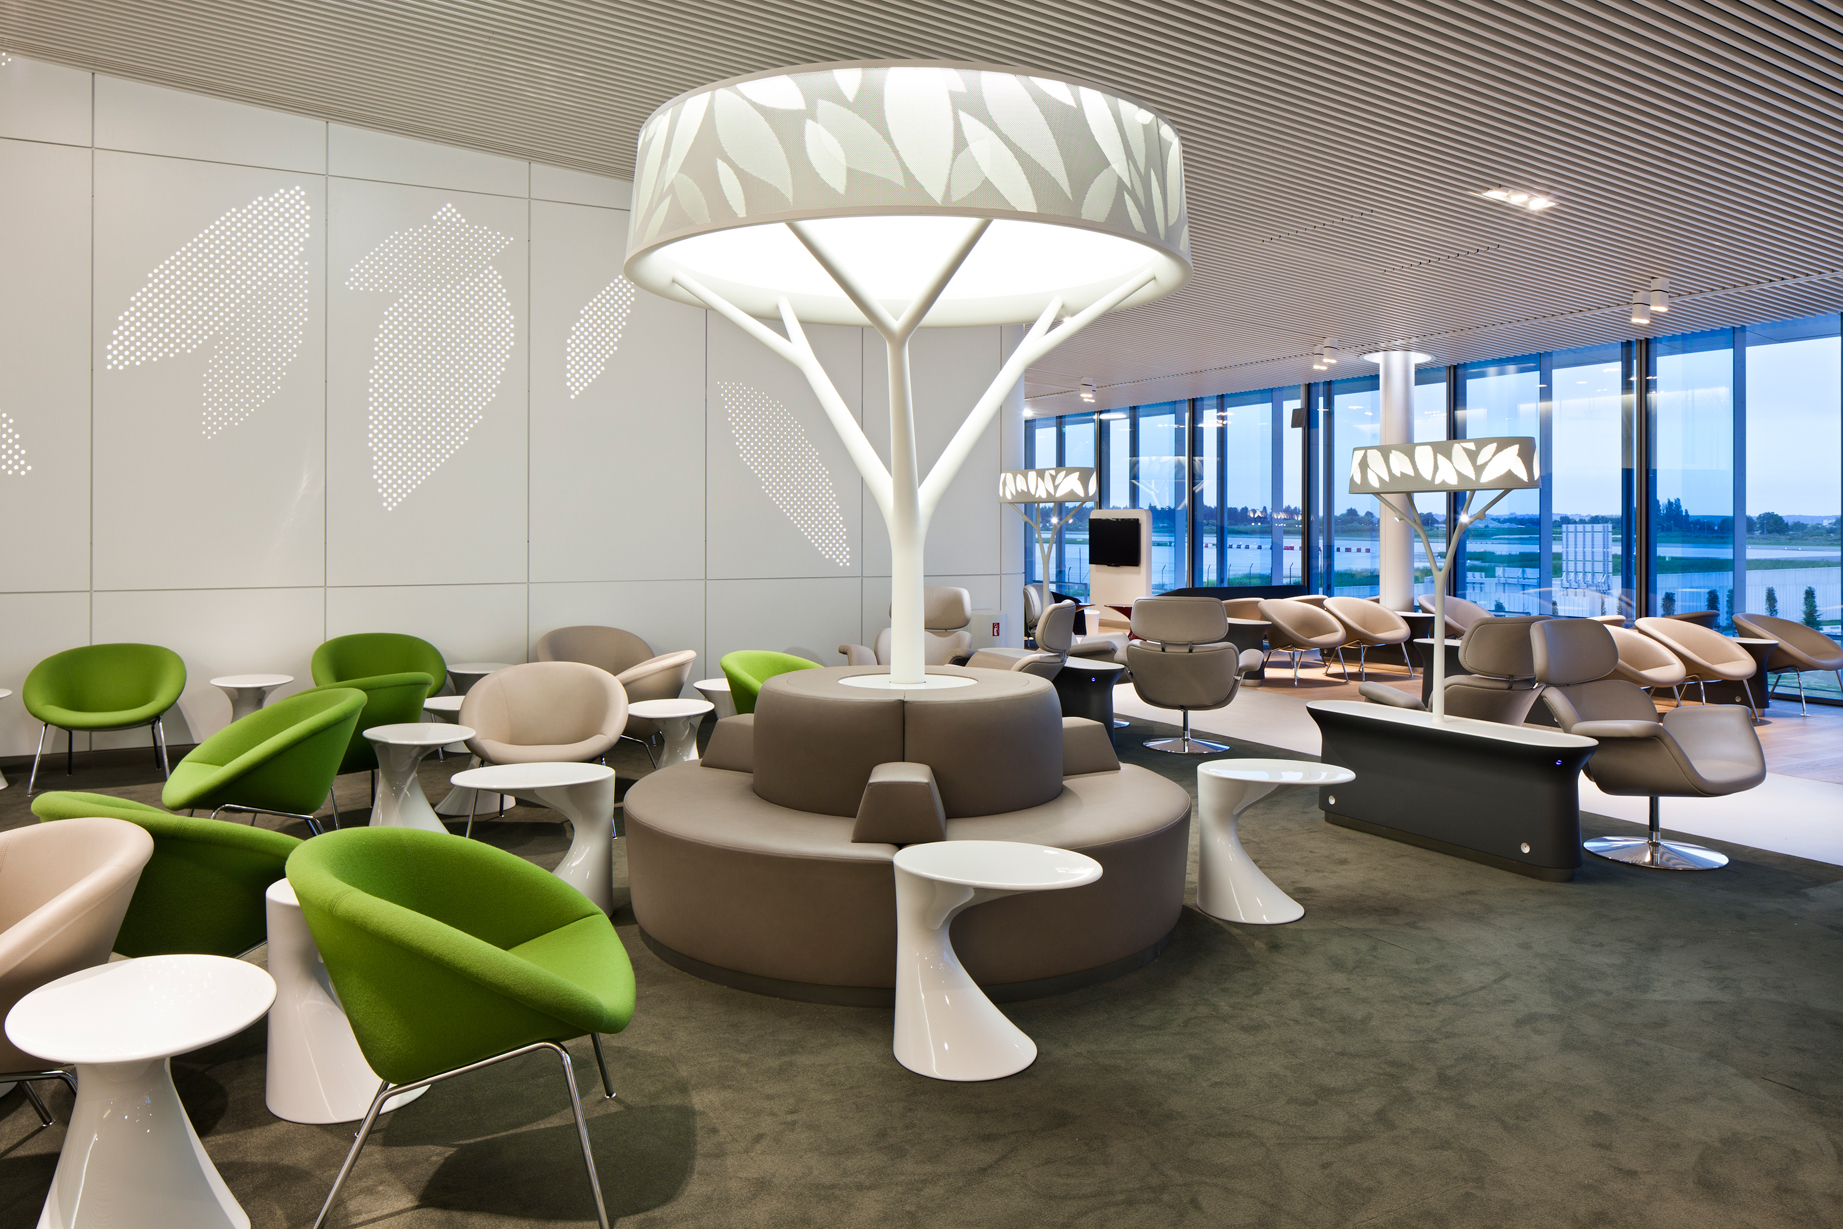 thedesignair top 10 airport lounges 2012 thedesignair. Black Bedroom Furniture Sets. Home Design Ideas